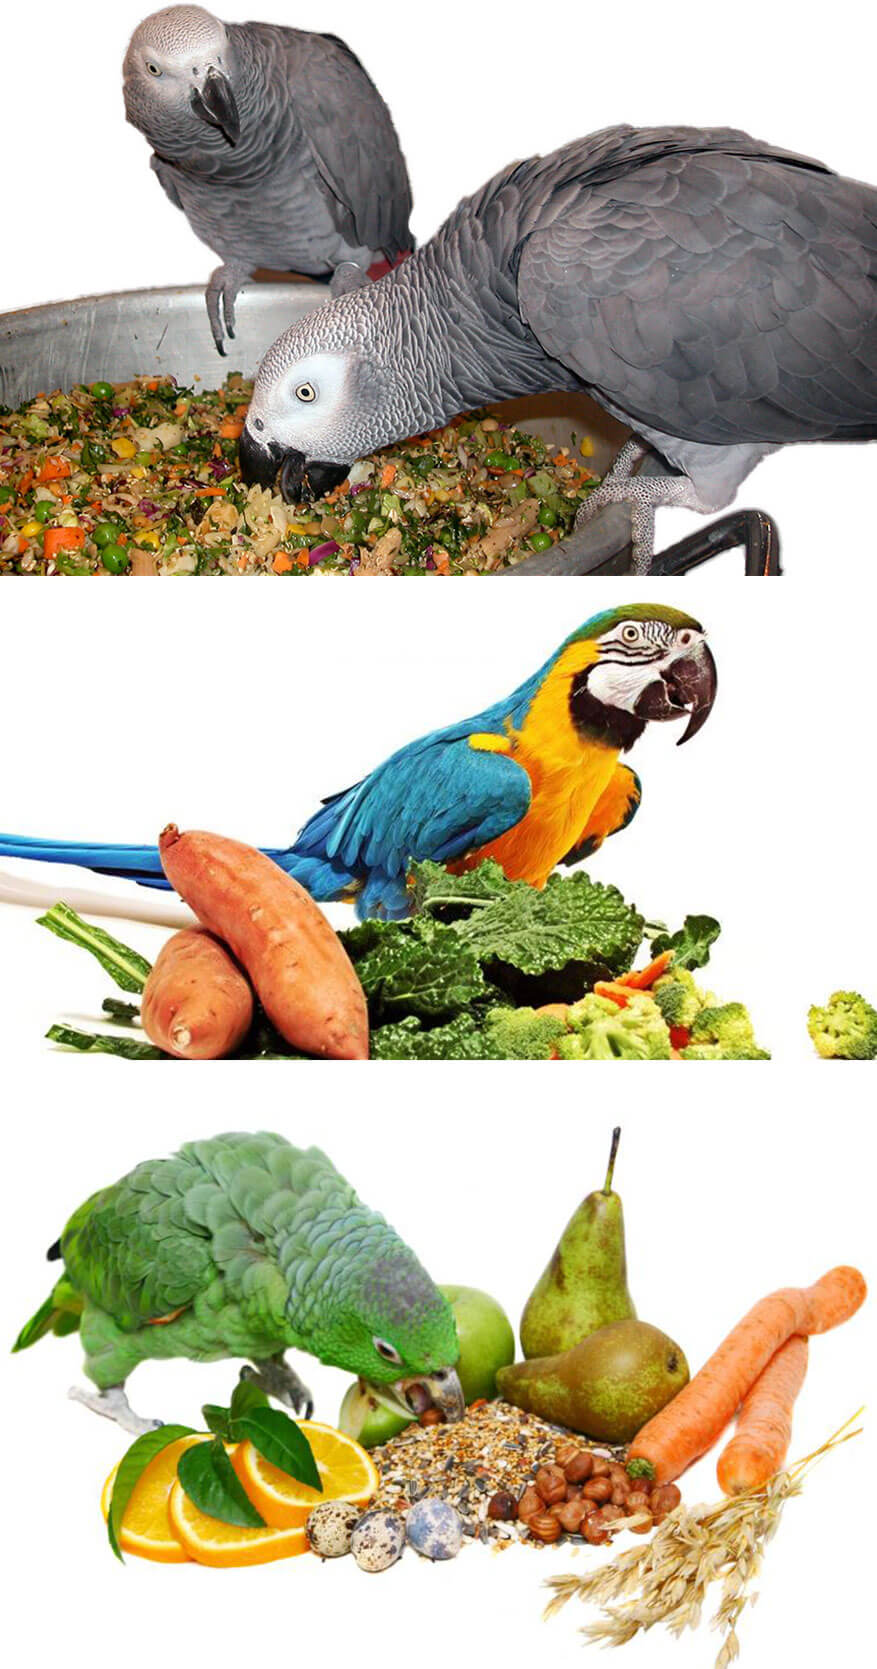 Which is the best Food for a Parrot?